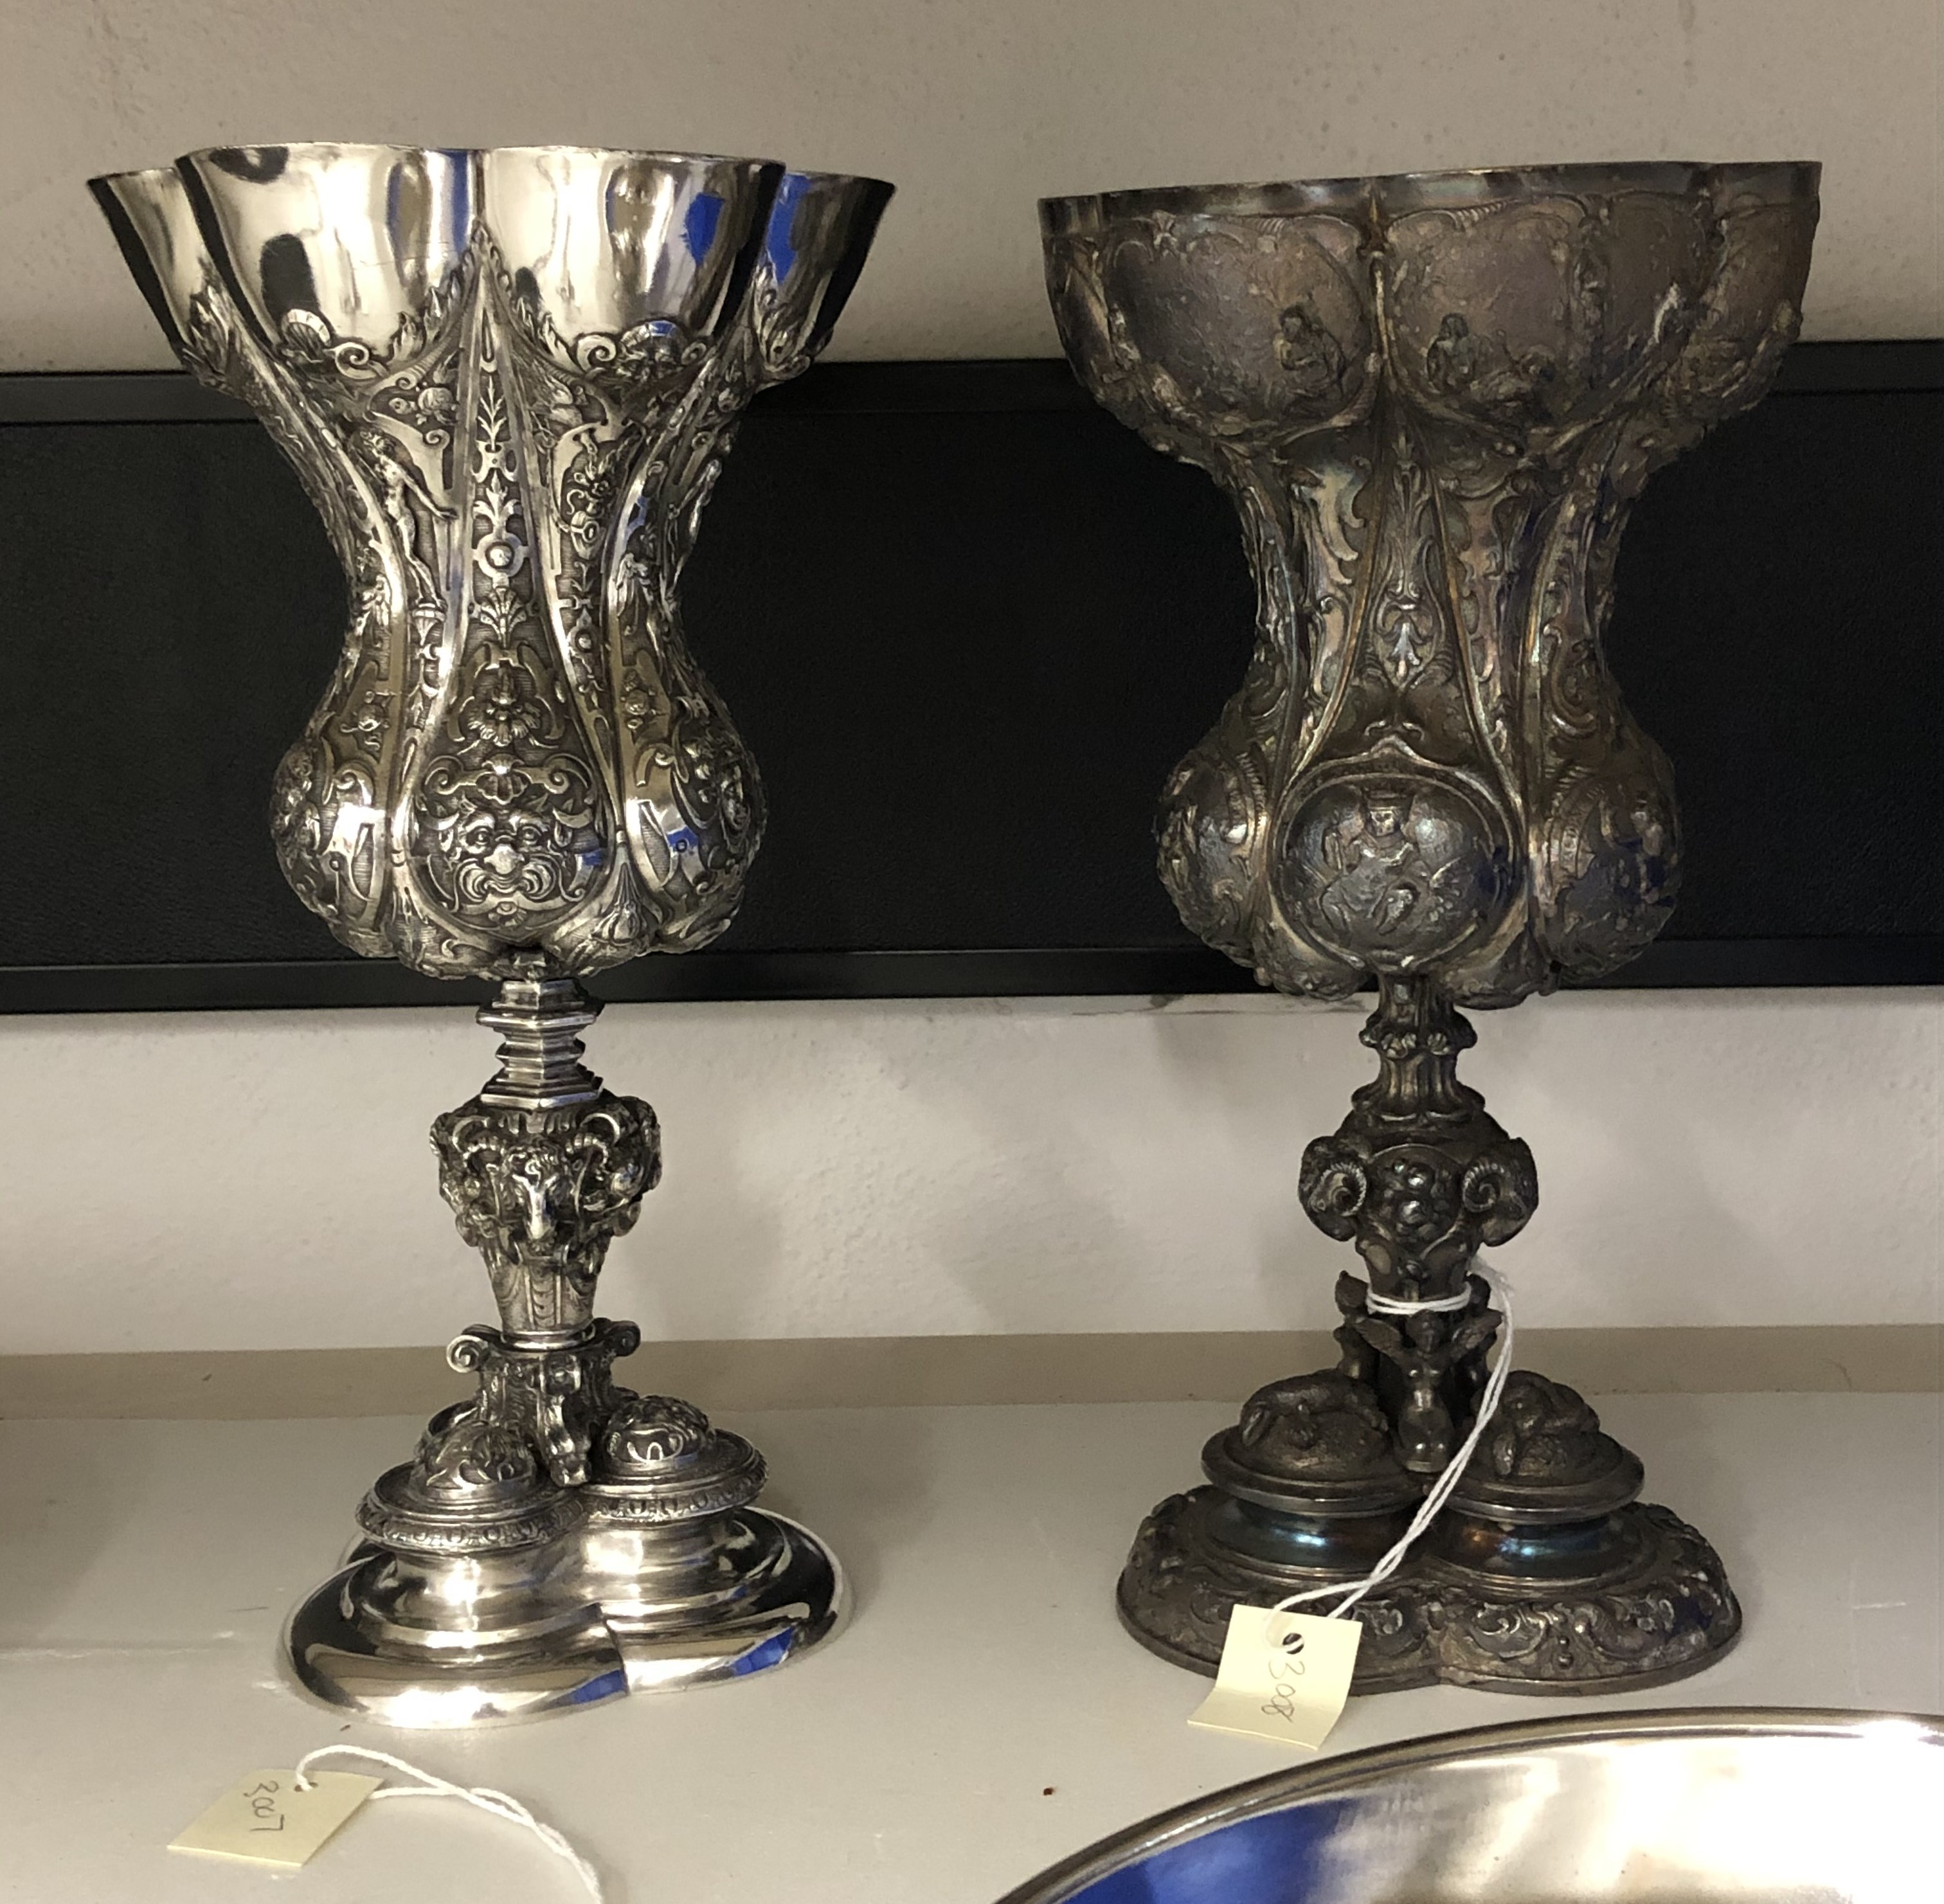 Two metal goblets side by side. The one on the left is polished and silver in colour, while the one on the right is heavily tarnished.